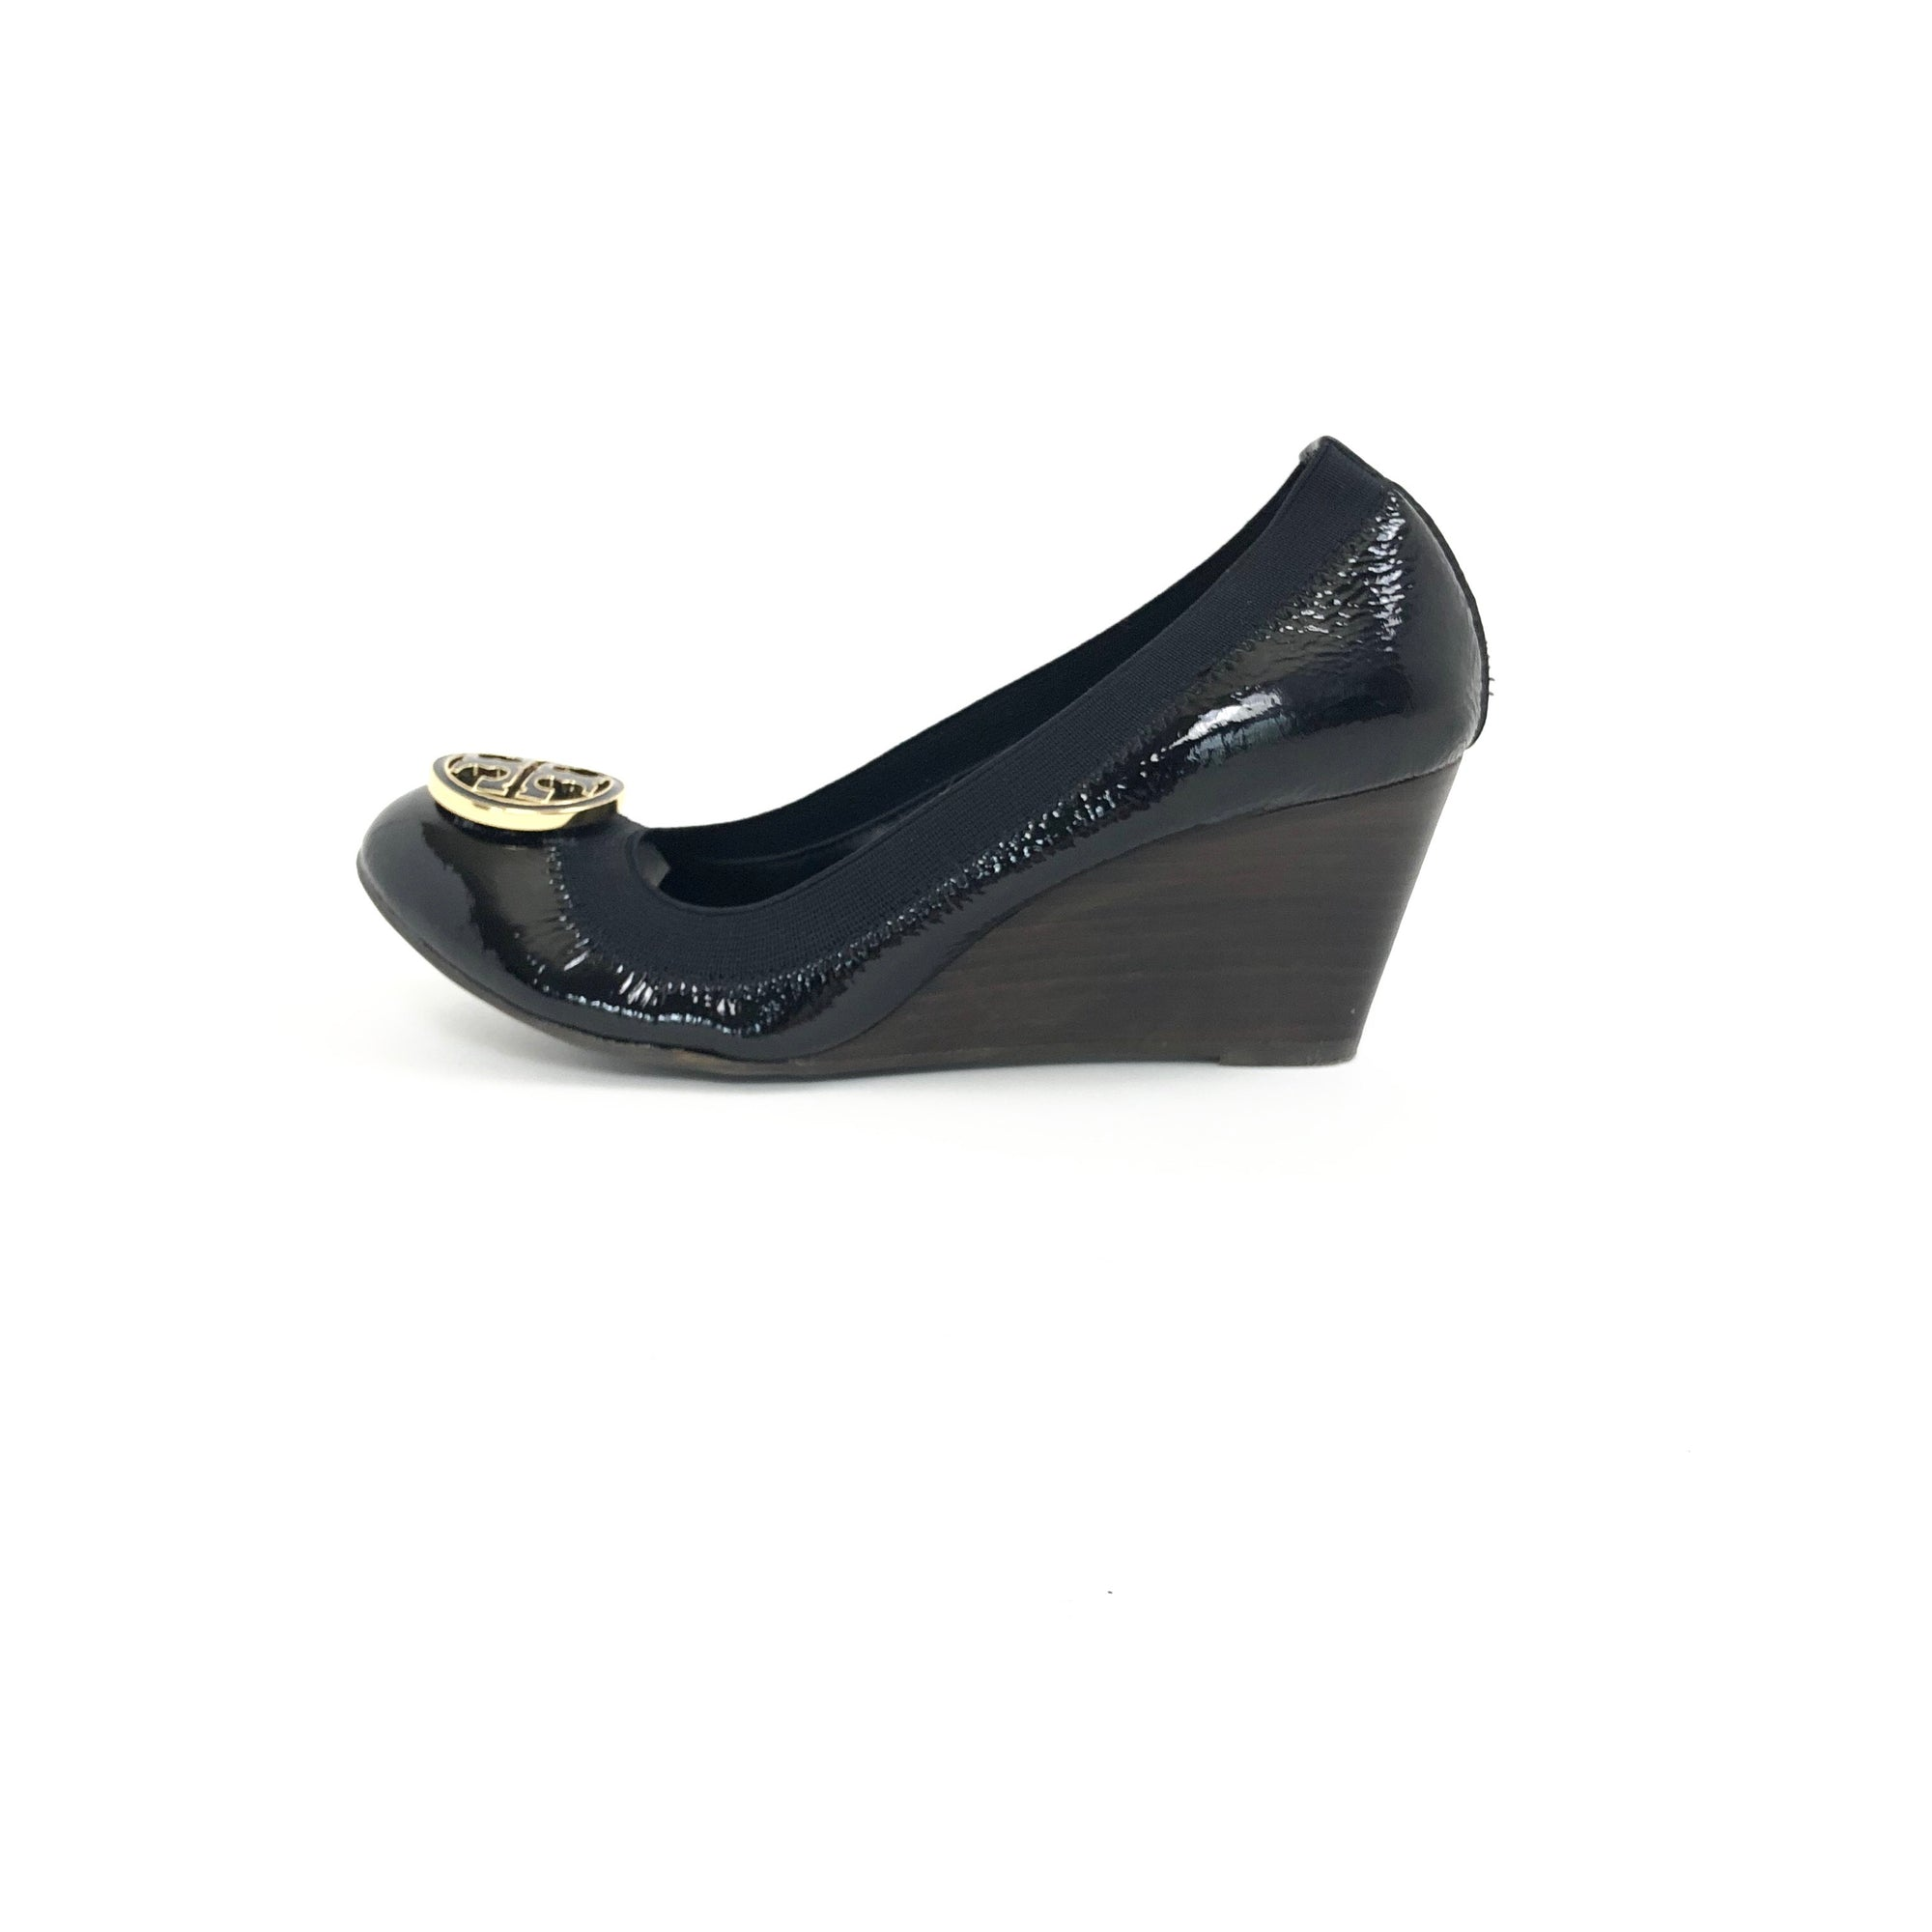 Tory Burch Caroline Patent Wedge Black, Size 7